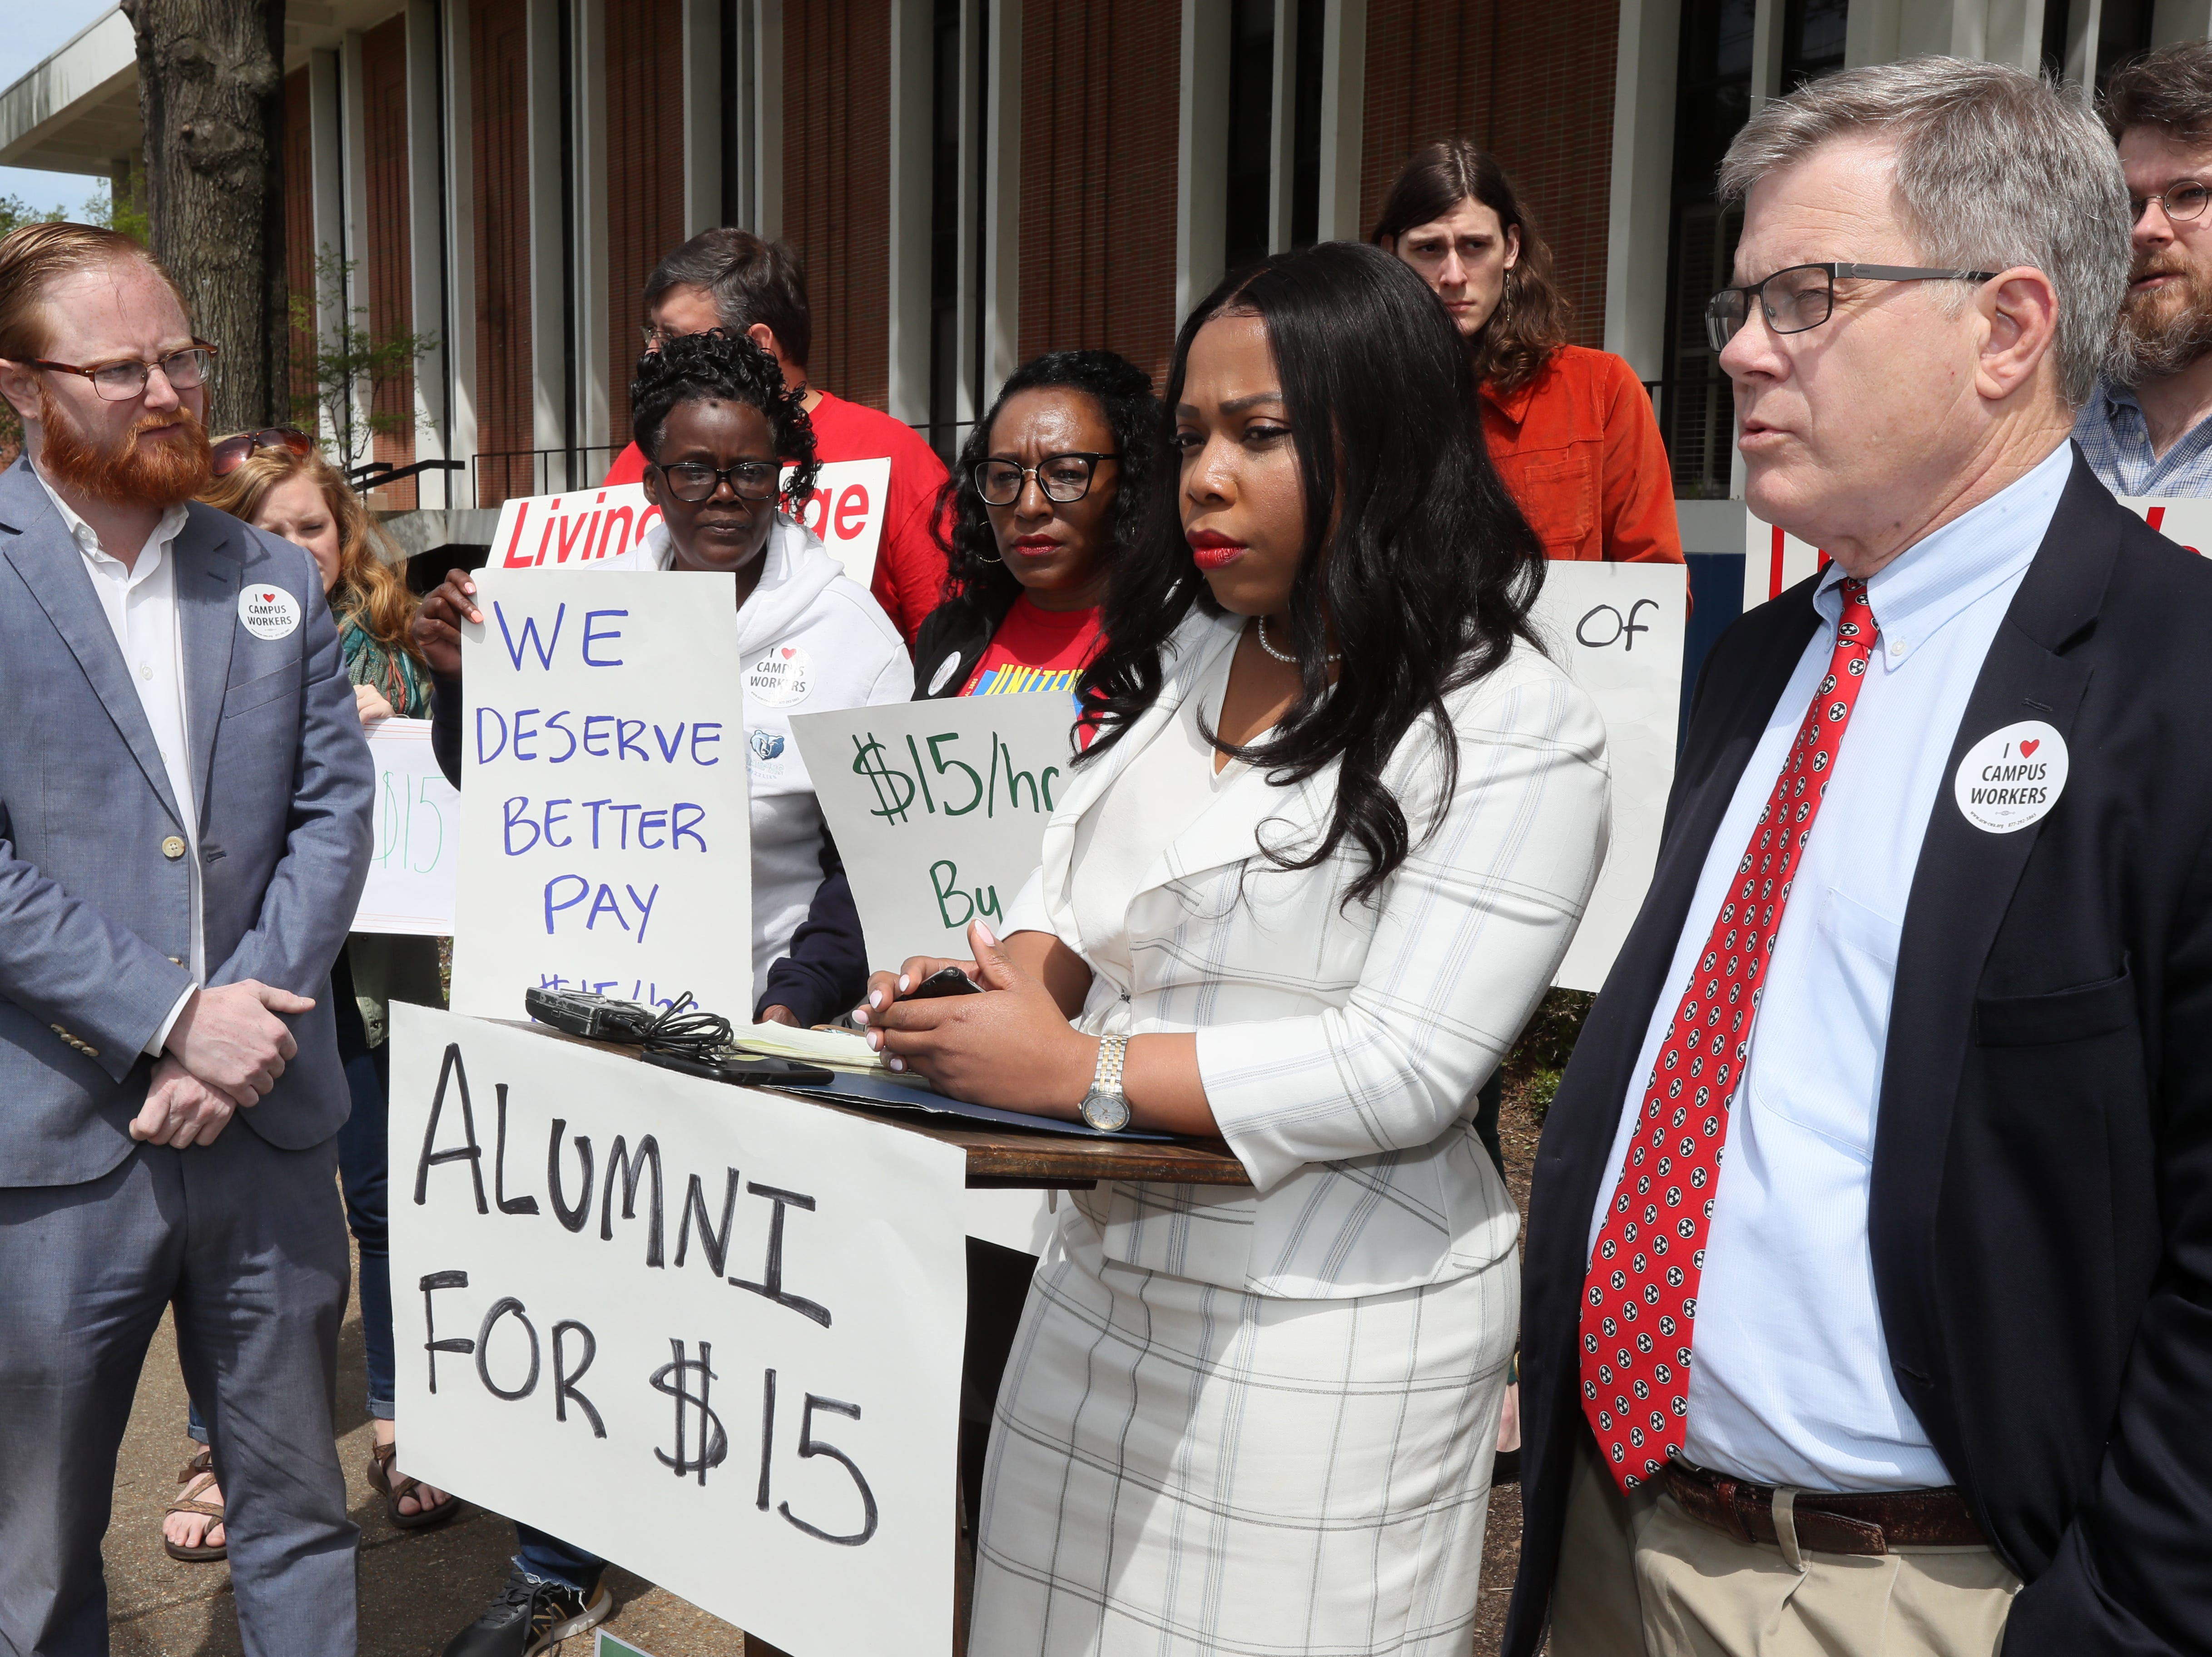 Allan Creasy, from left, Sen. Katrina Robinson and Rep. Dwayne Thompson speak during a press conference to address implementing a $15 minimum hourly wage for all campus employees at the University of Memphis on Friday, April 12, 2019.